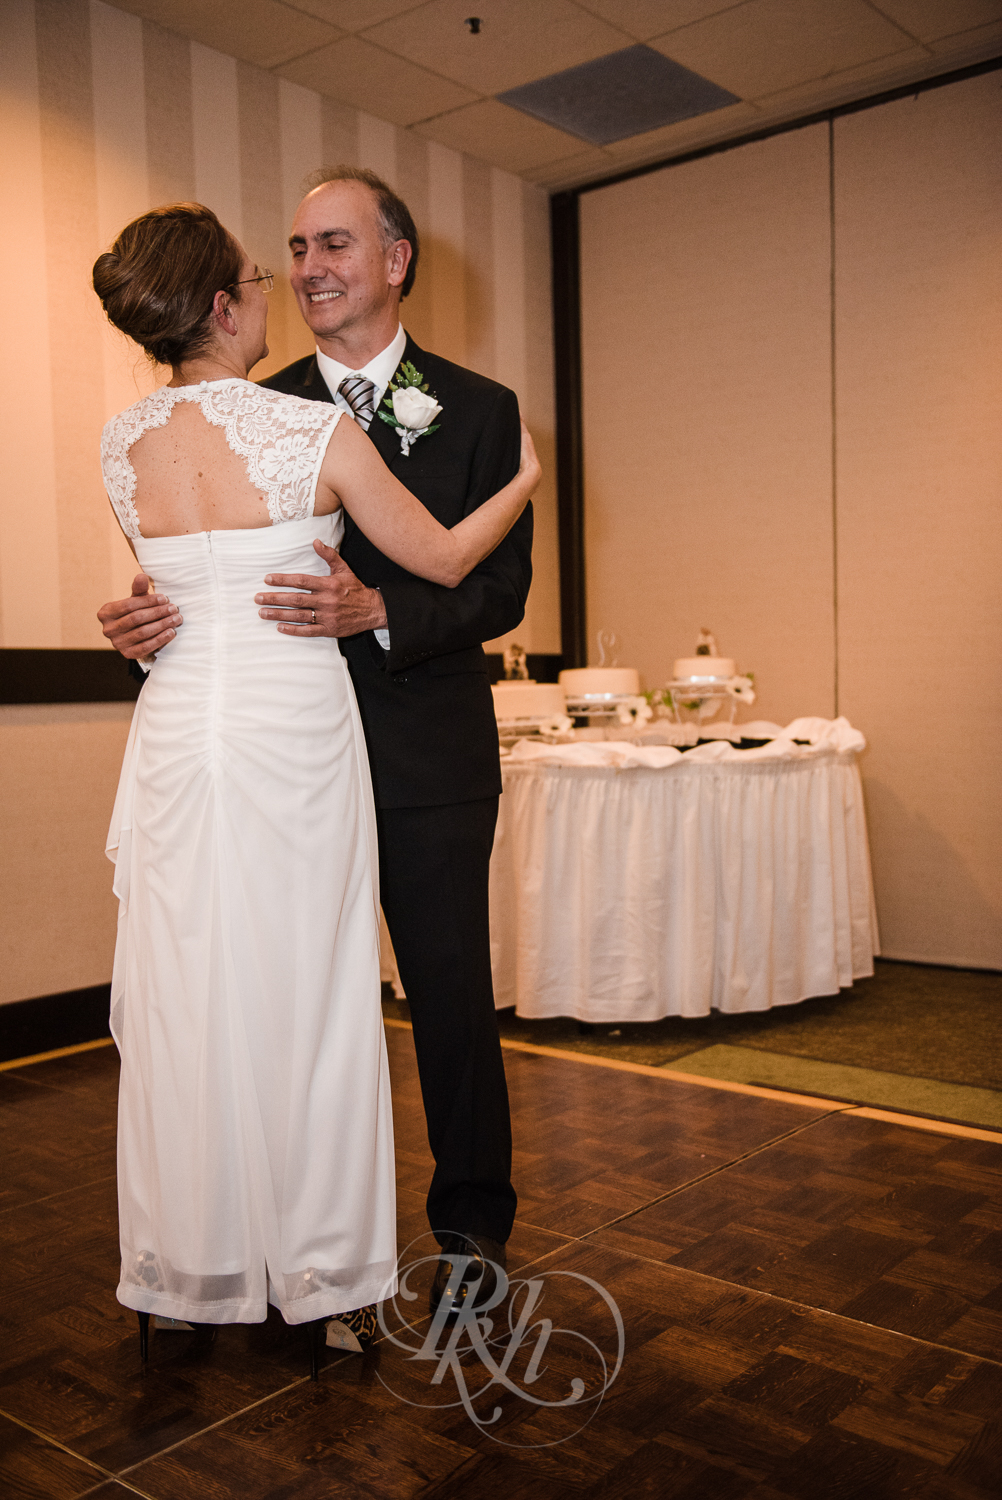 Lakeville Wedding Photography - Bertie & Maurico - RKH Images-24